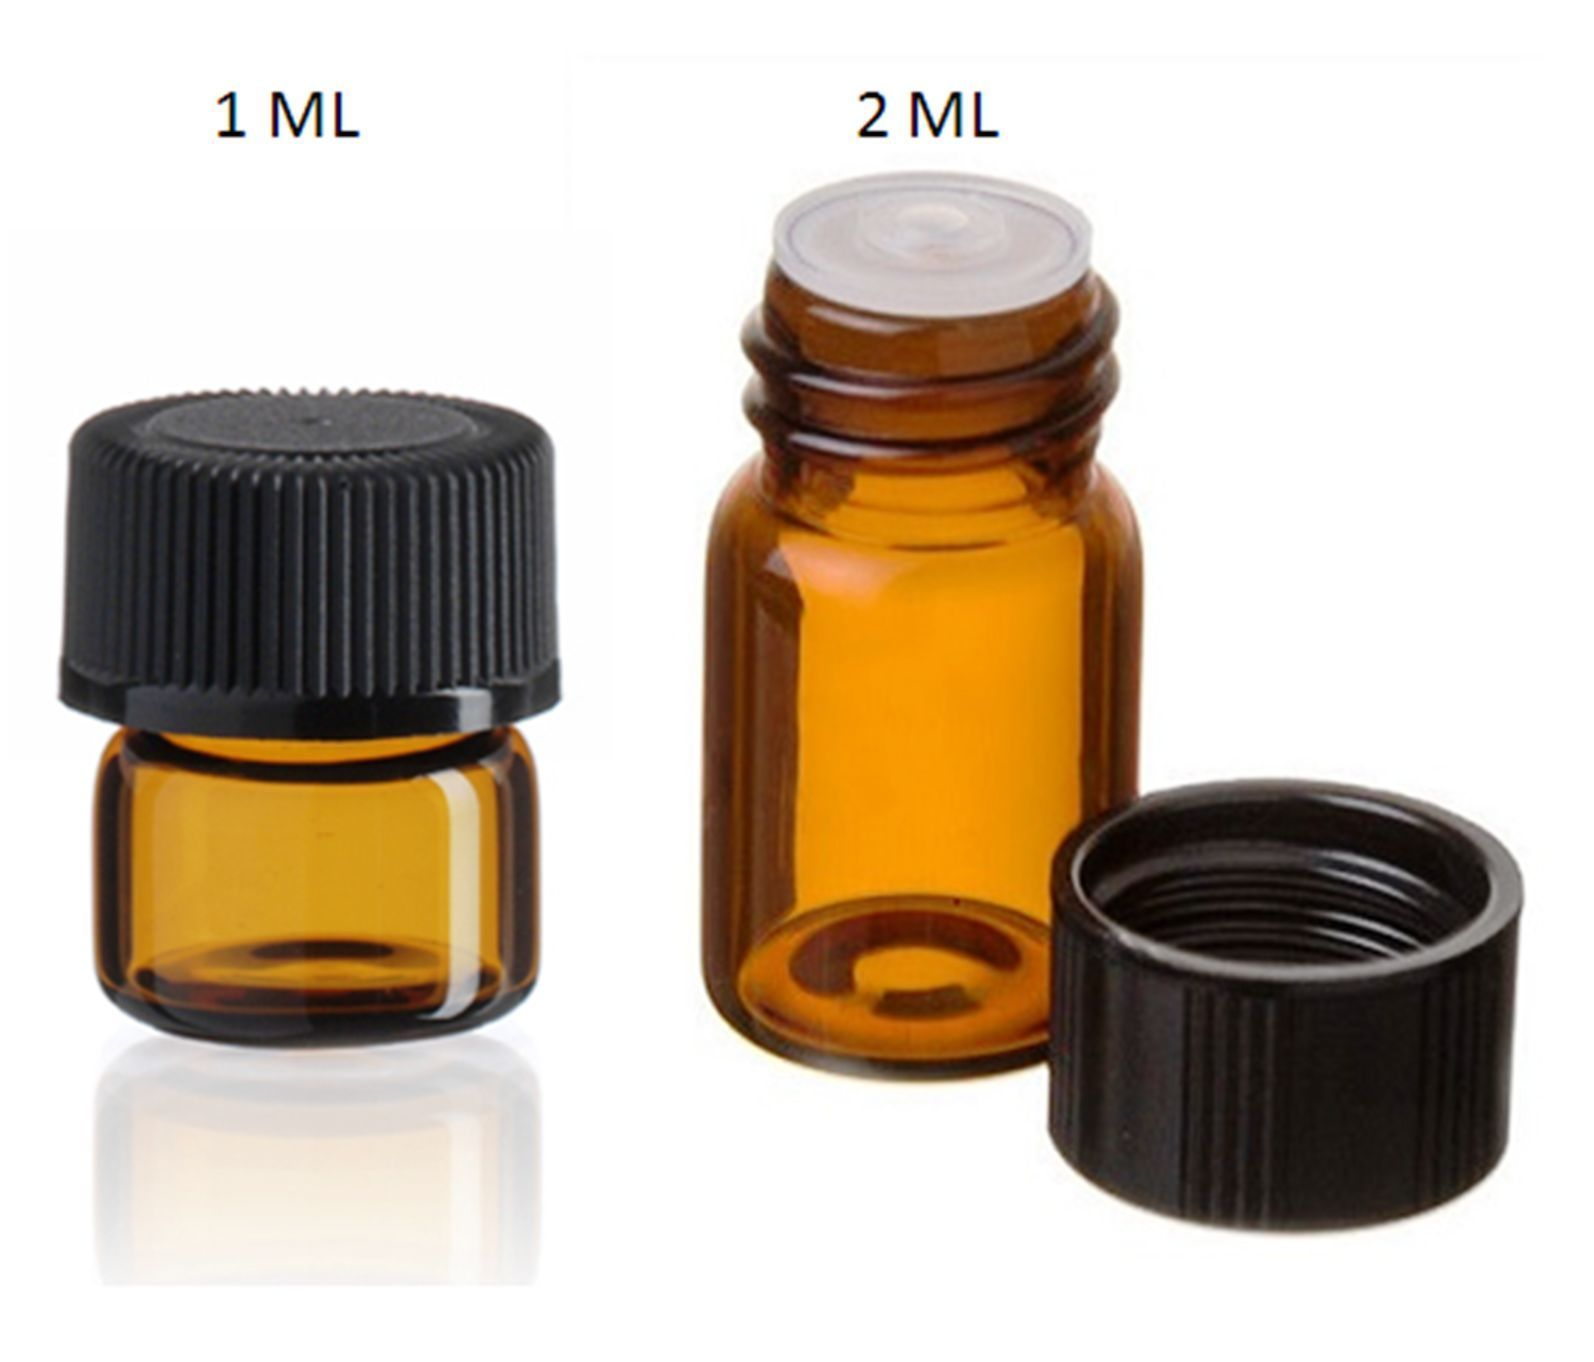 Details About Essential Oil Amber Glass Vials W Orifice 1ml 2ml Size Sample Dram Bottles Products Amber Glass Glass Vials Amber Glass Bottles